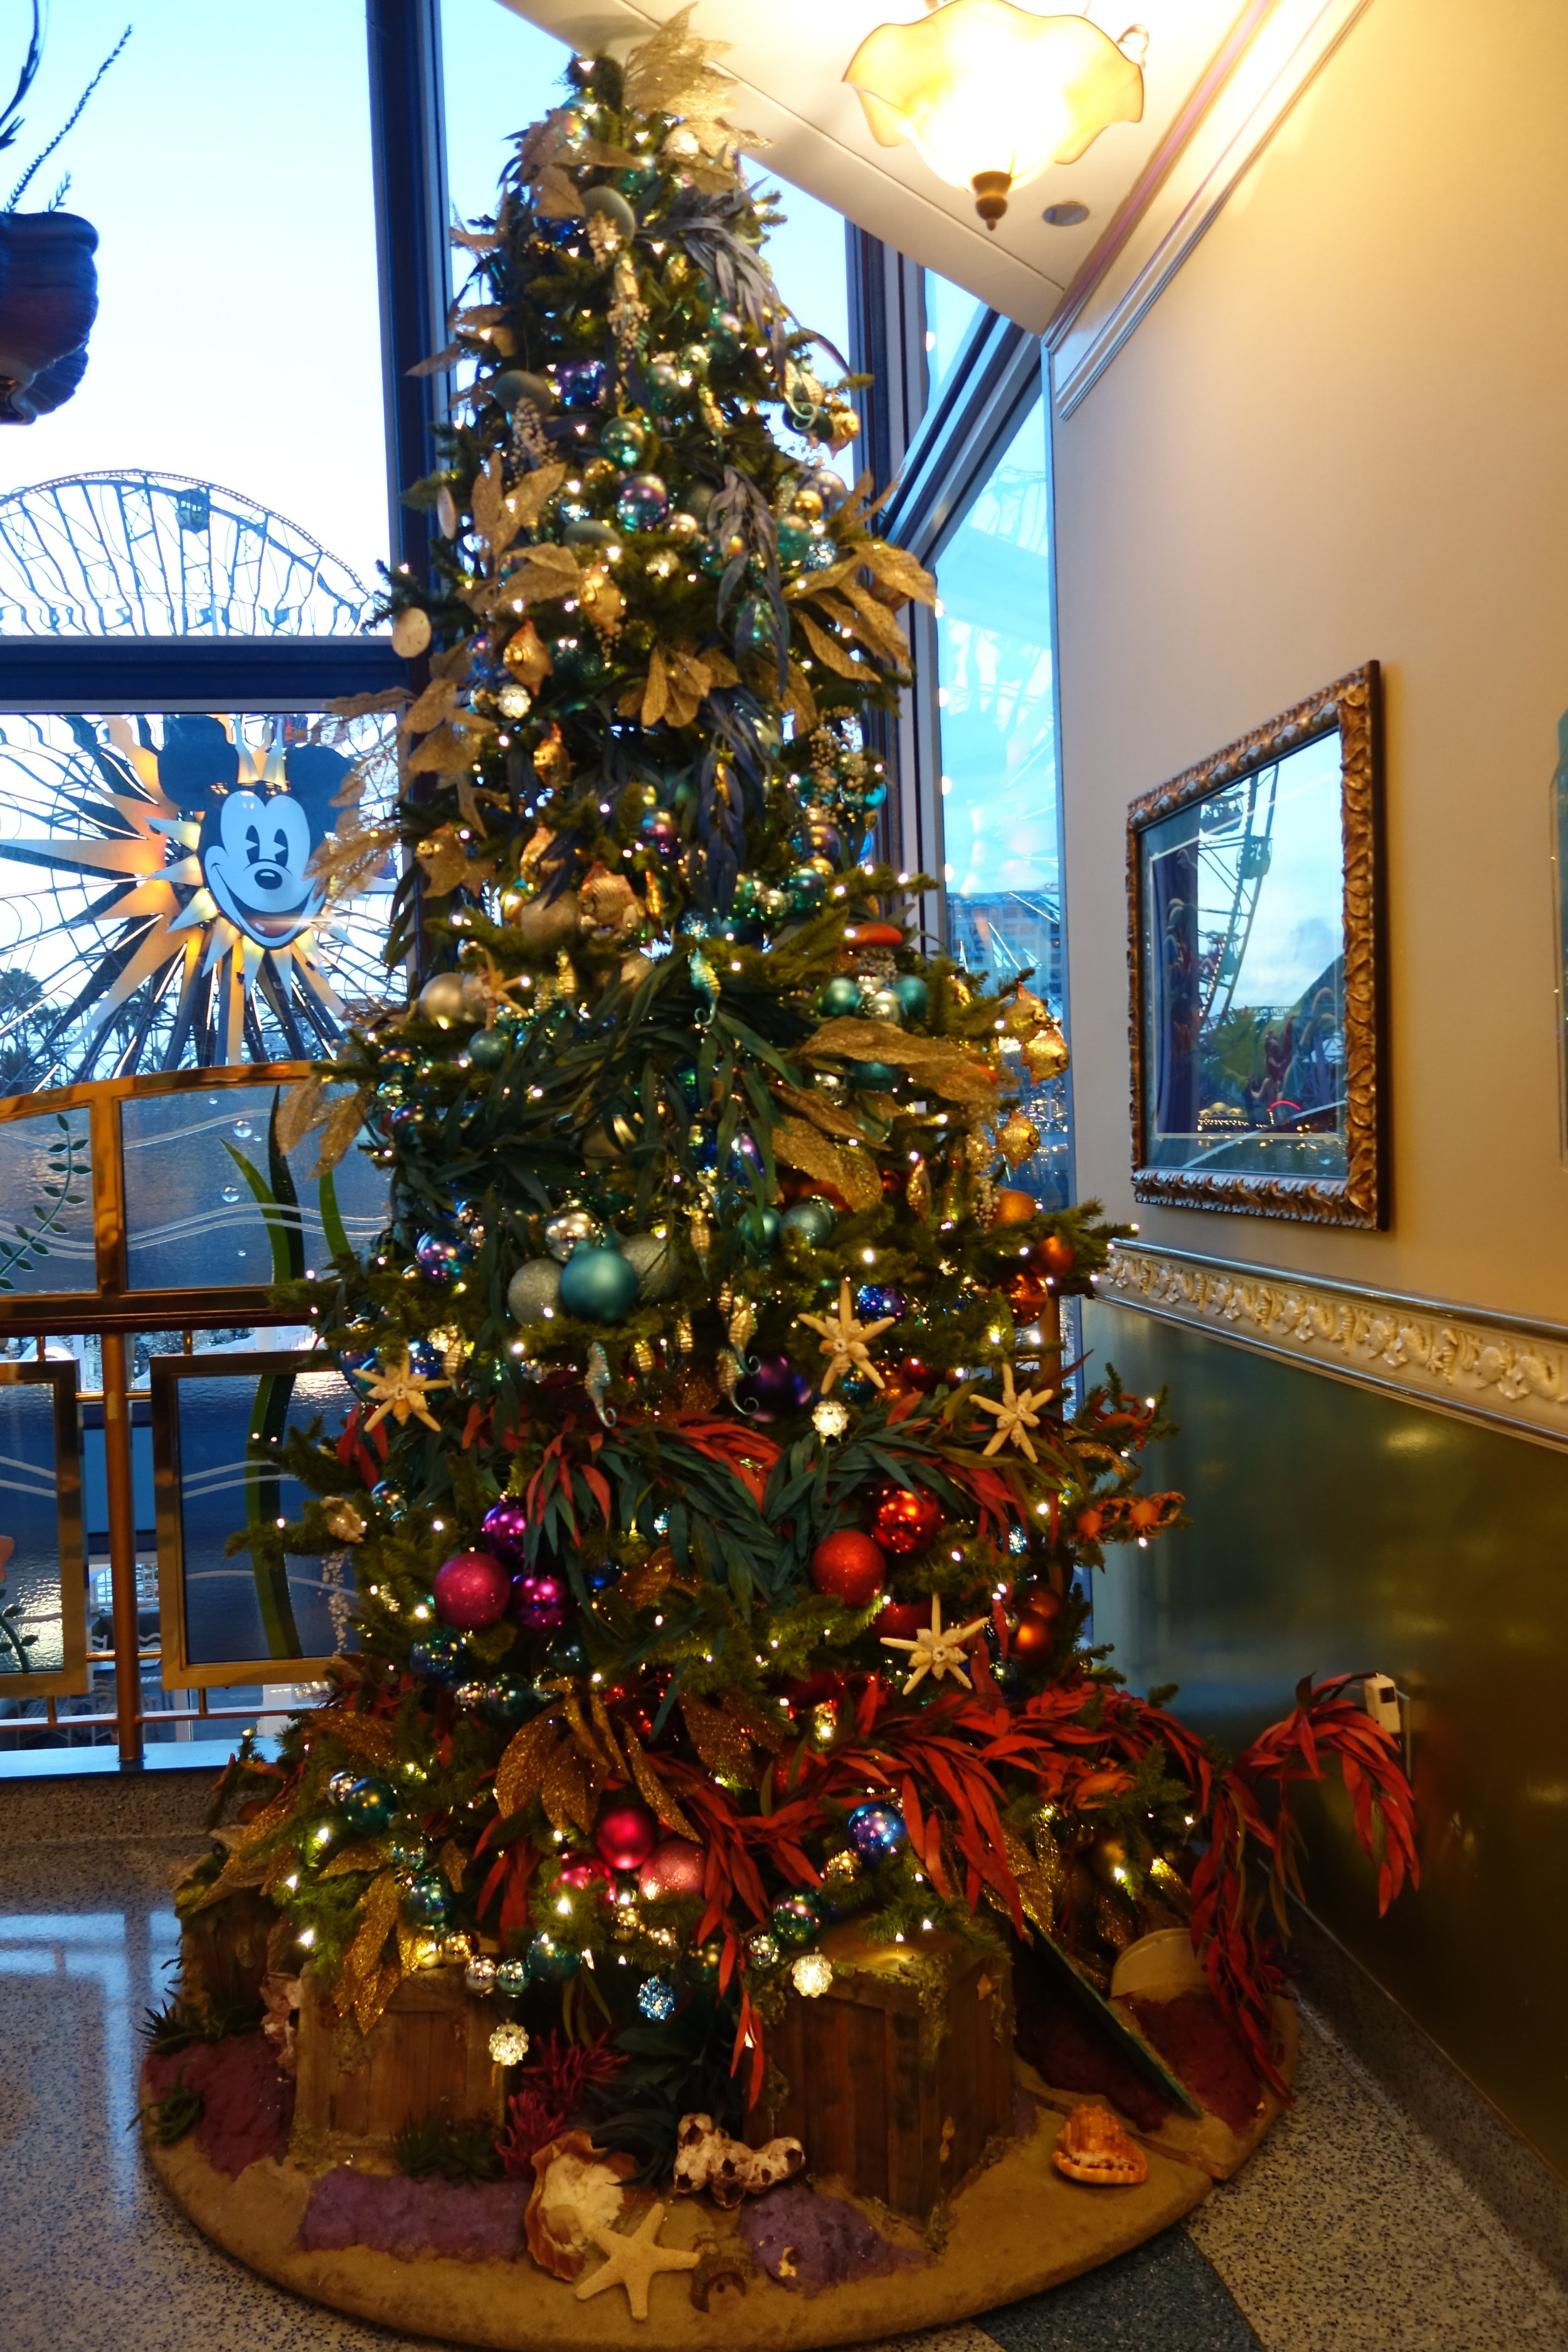 Ariel's Grotto's underwater themed Christmas tree.